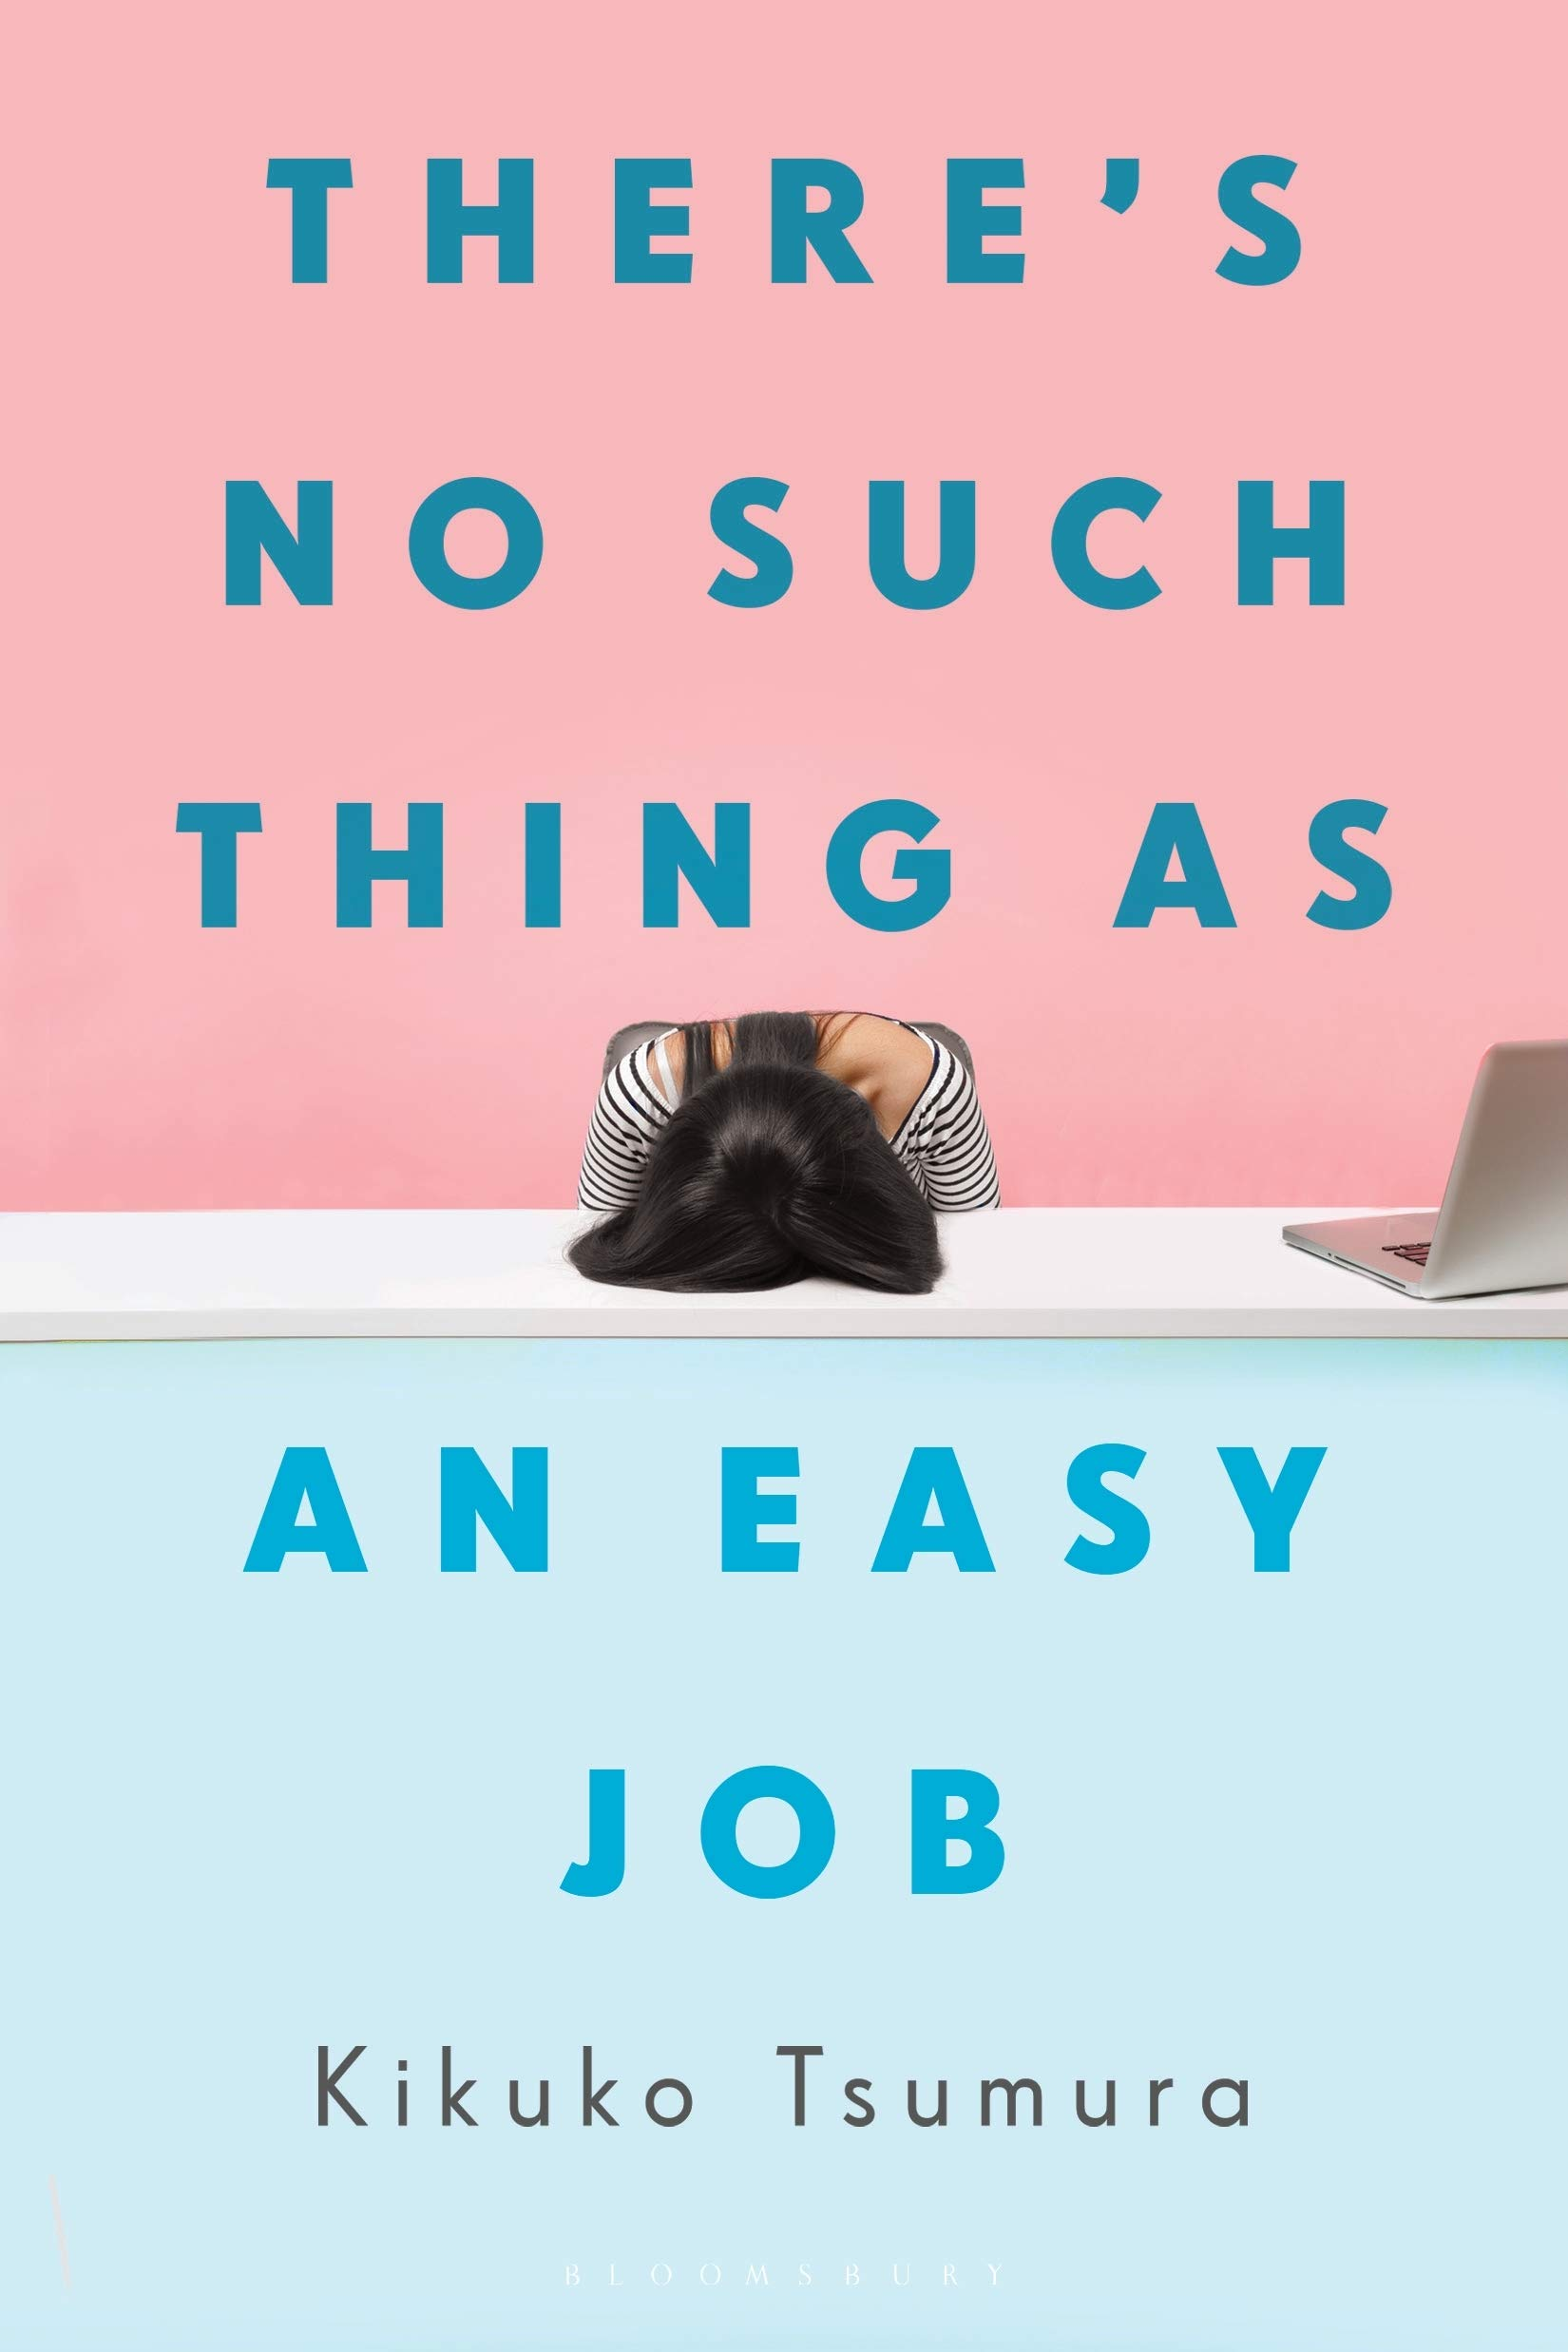 there's_no_such_thing_as_an_easy _job